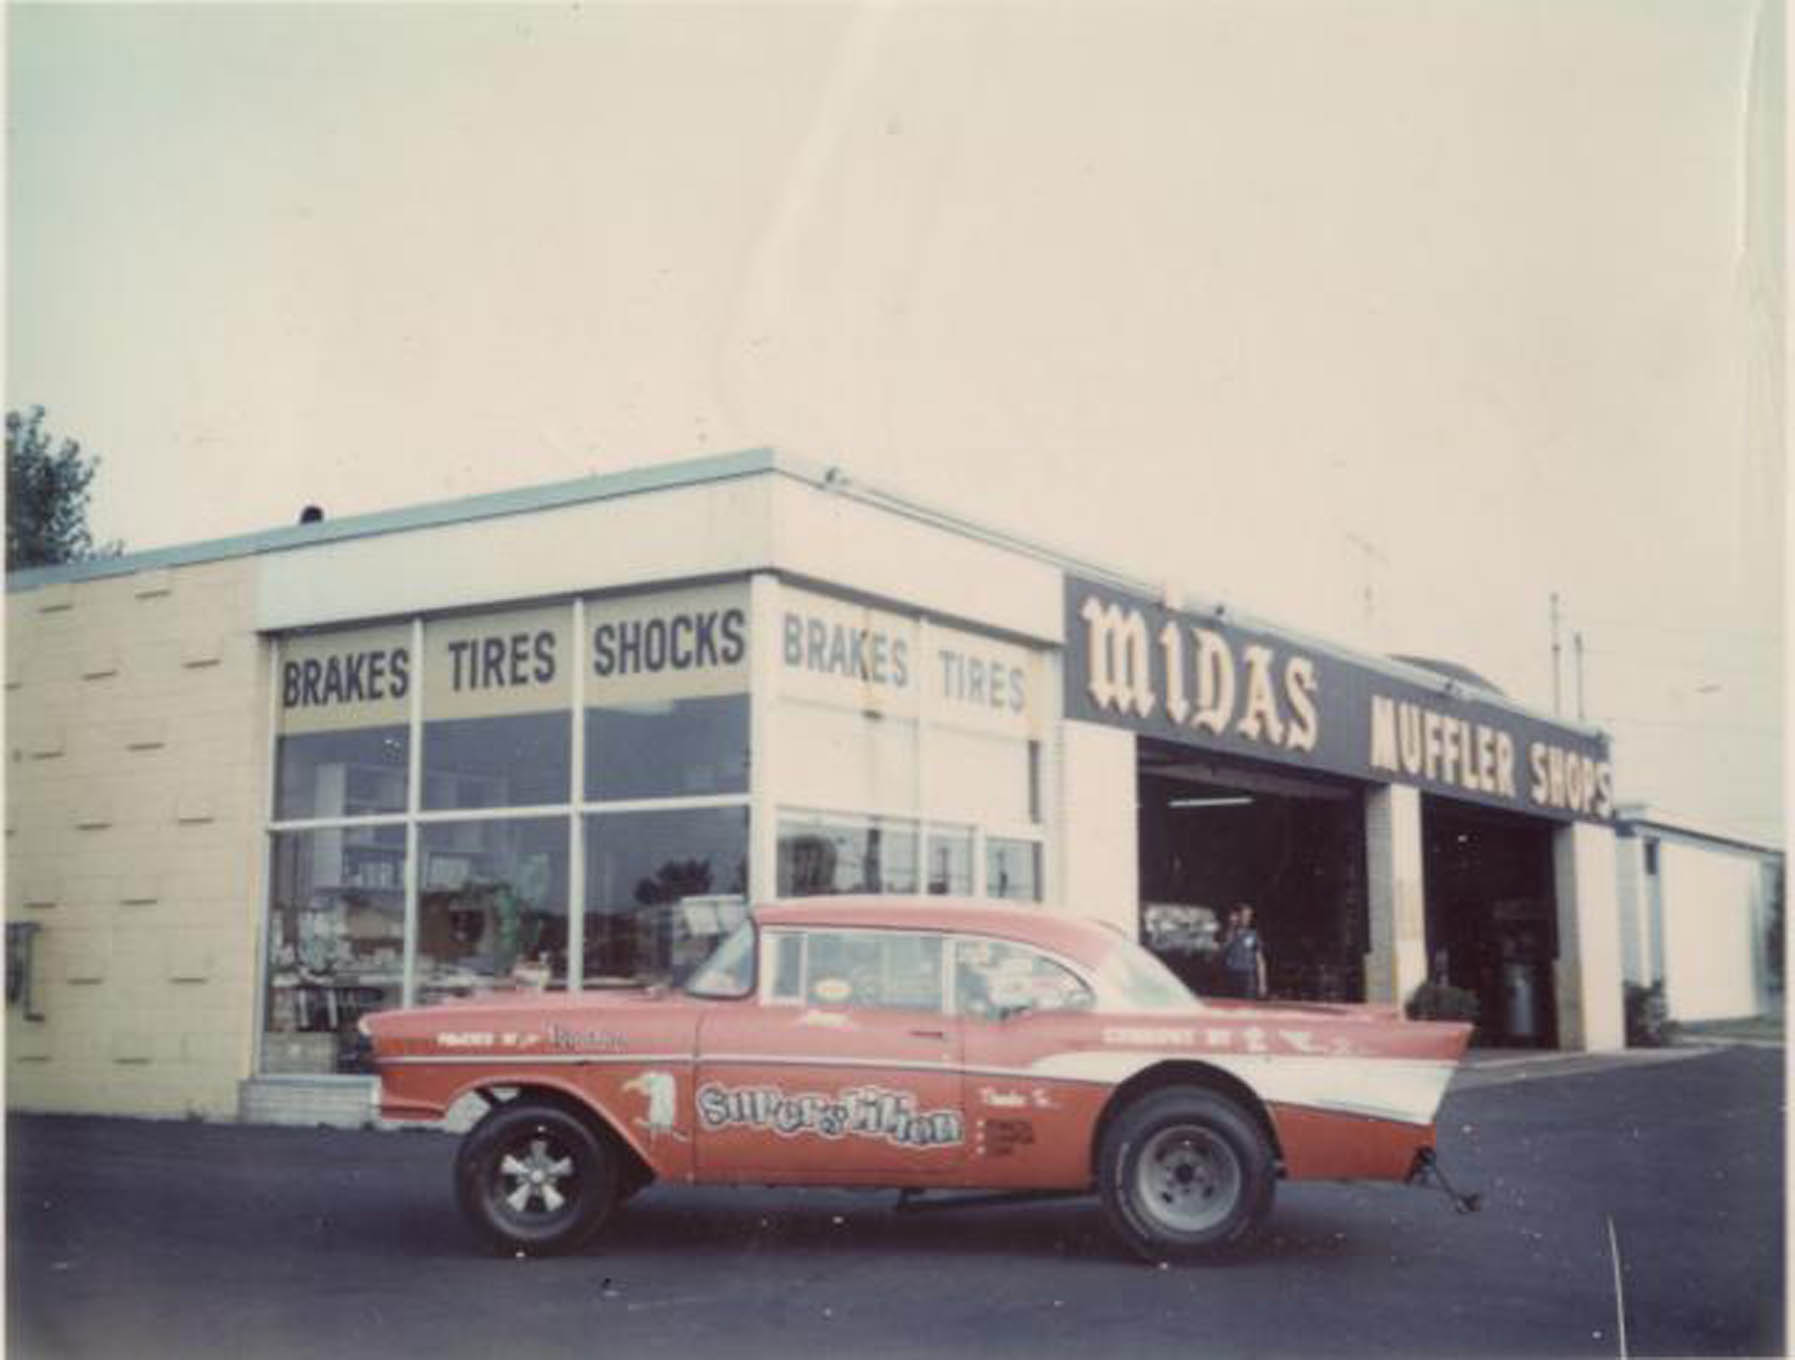 This photo was taken on the day the zoomies were first put on the engine at the Midas muffler shop in Milwaukee, circa 1969-'70.